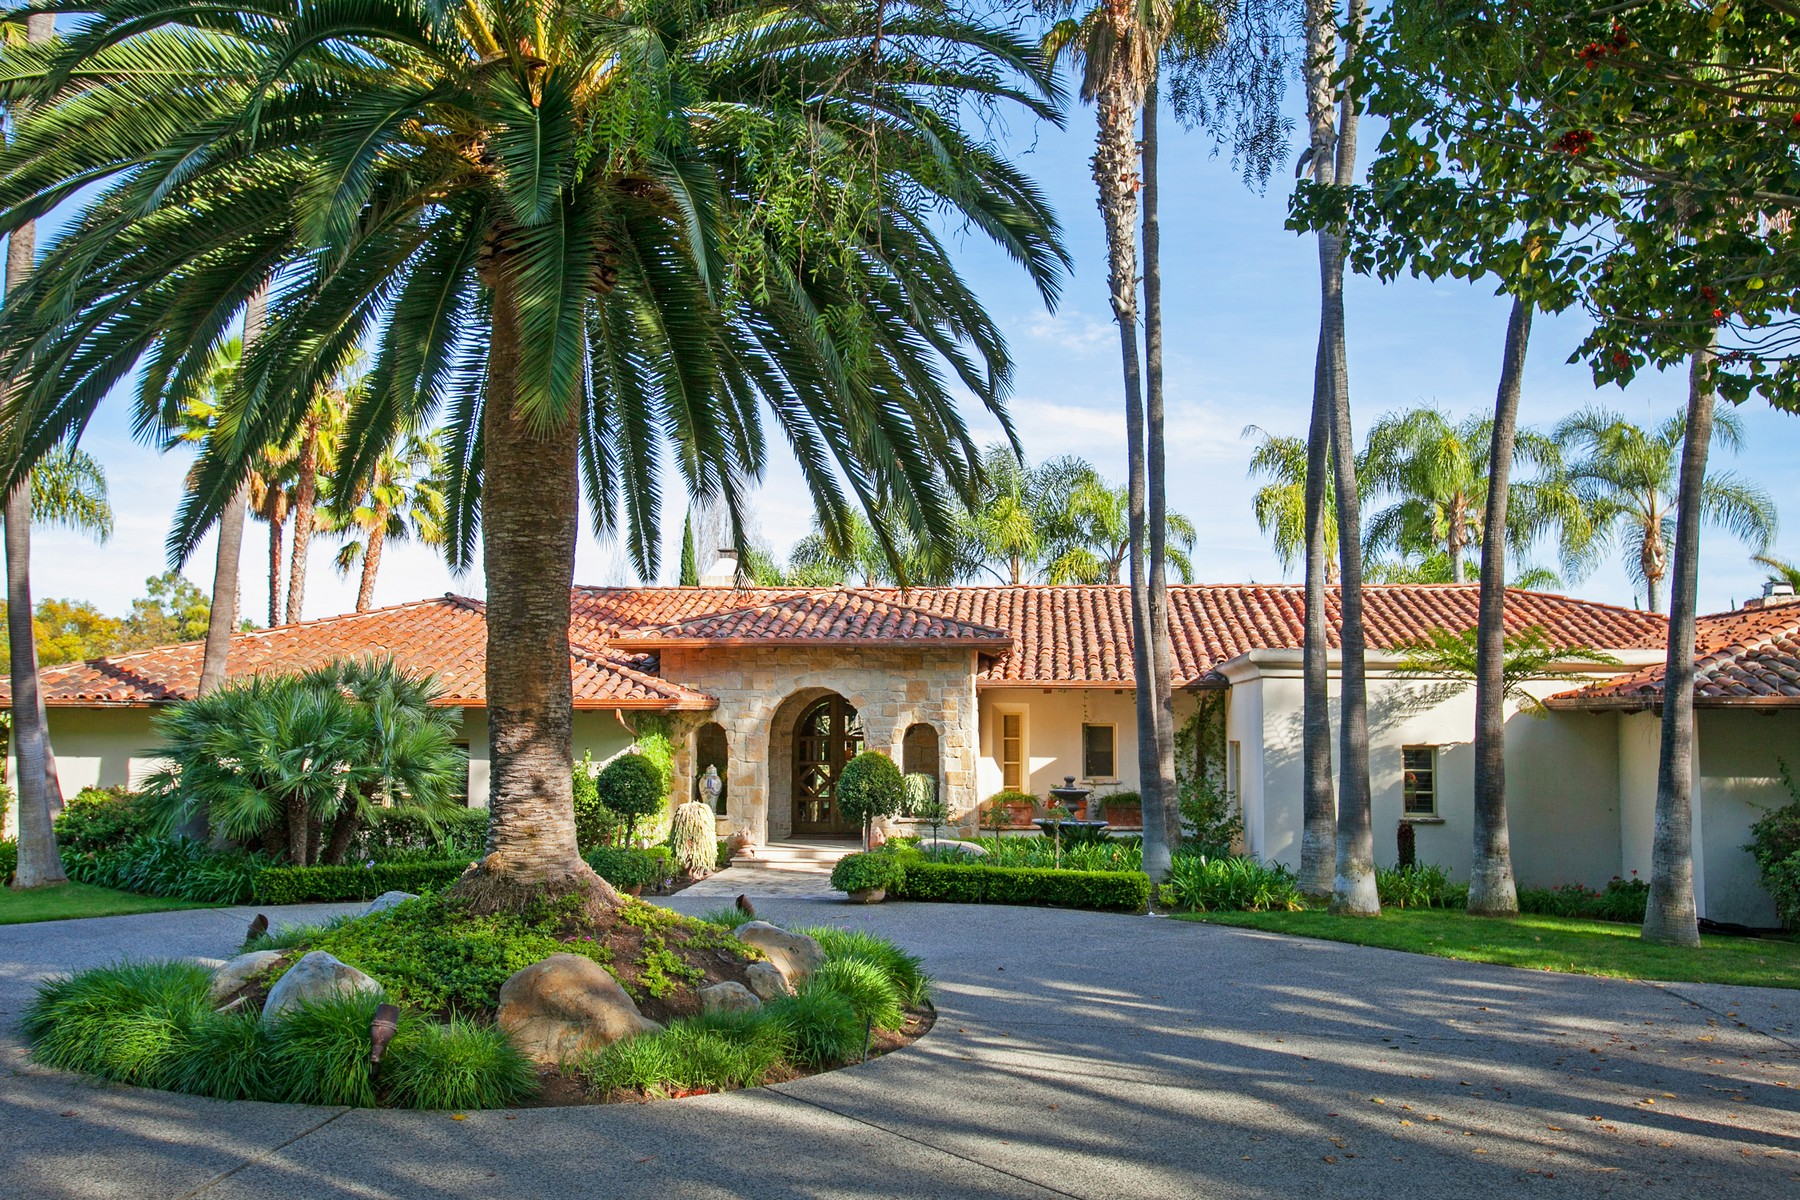 Single Family Home for Sale at 7045 El Vuelo Del Este Rancho Santa Fe, California 92067 United States